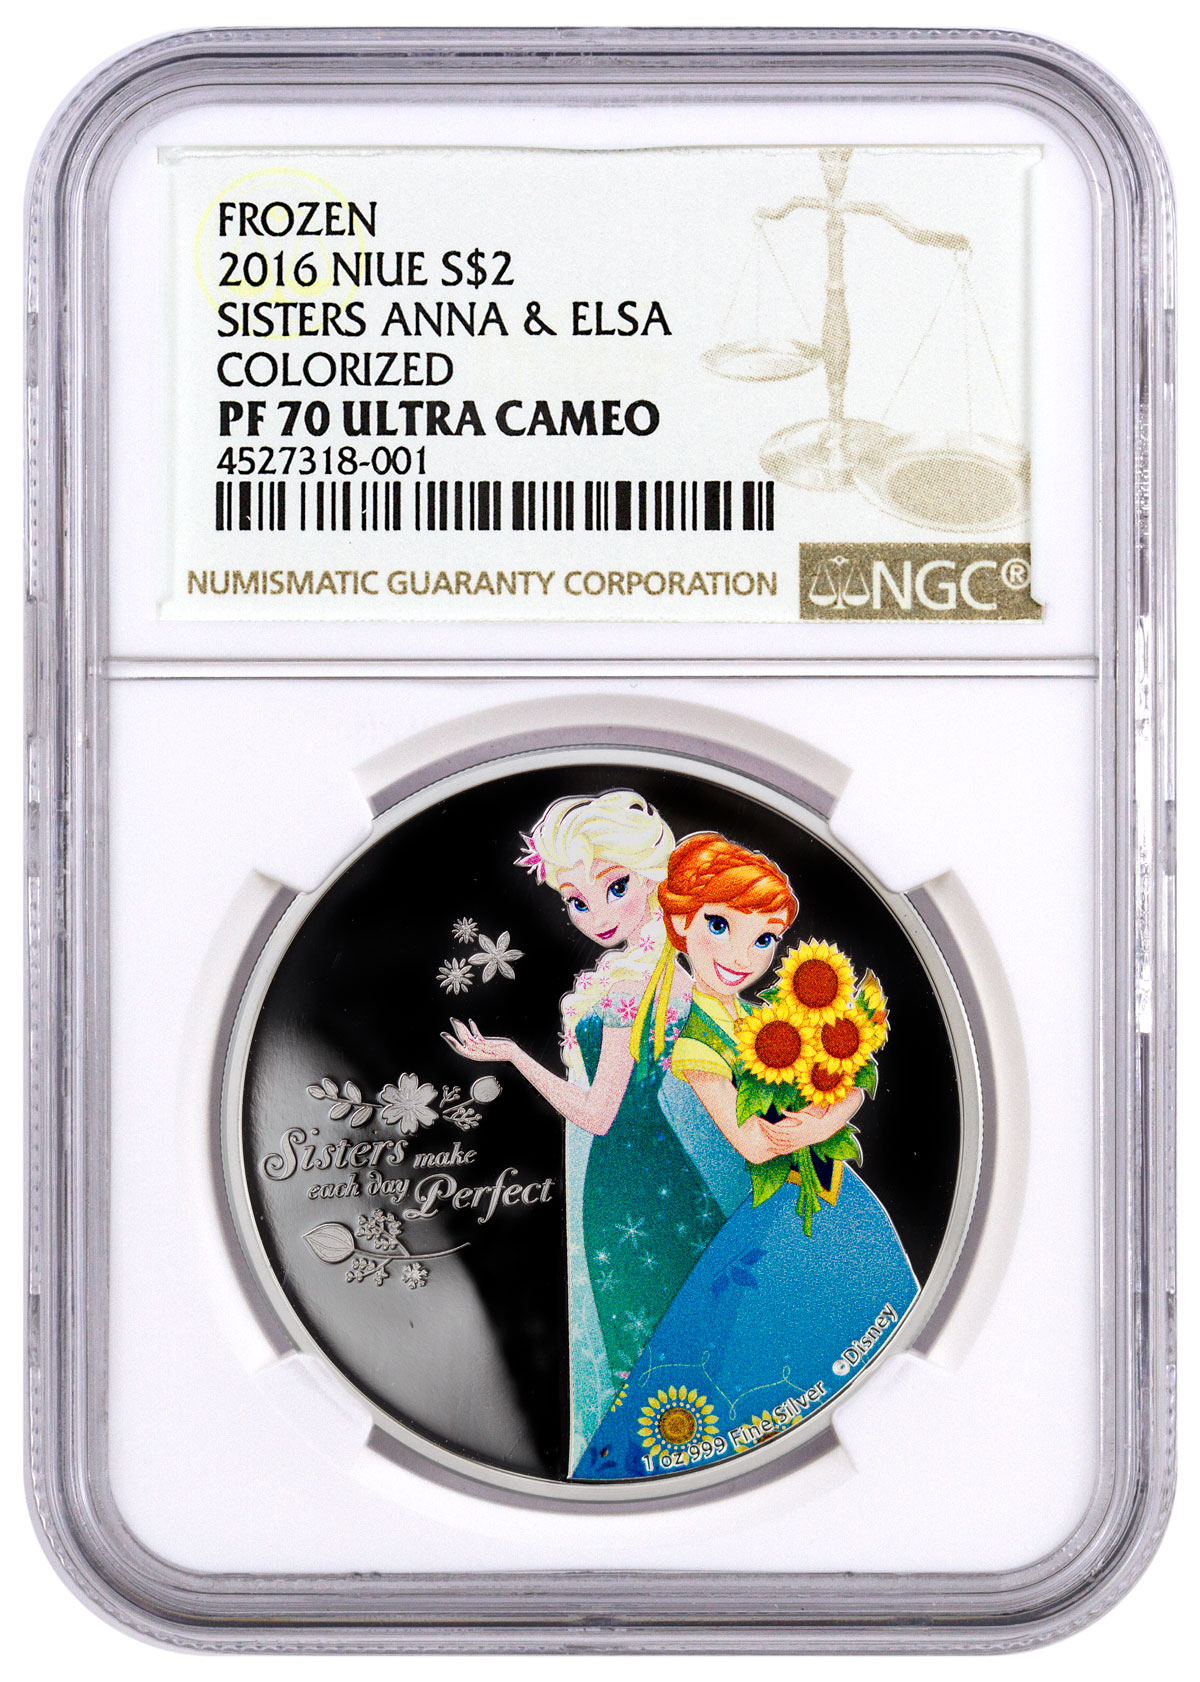 2016 Niue Disney Frozen - Sisters Anna and Elsa 1 oz Silver Colorized Proof $2 NGC PF70 UC